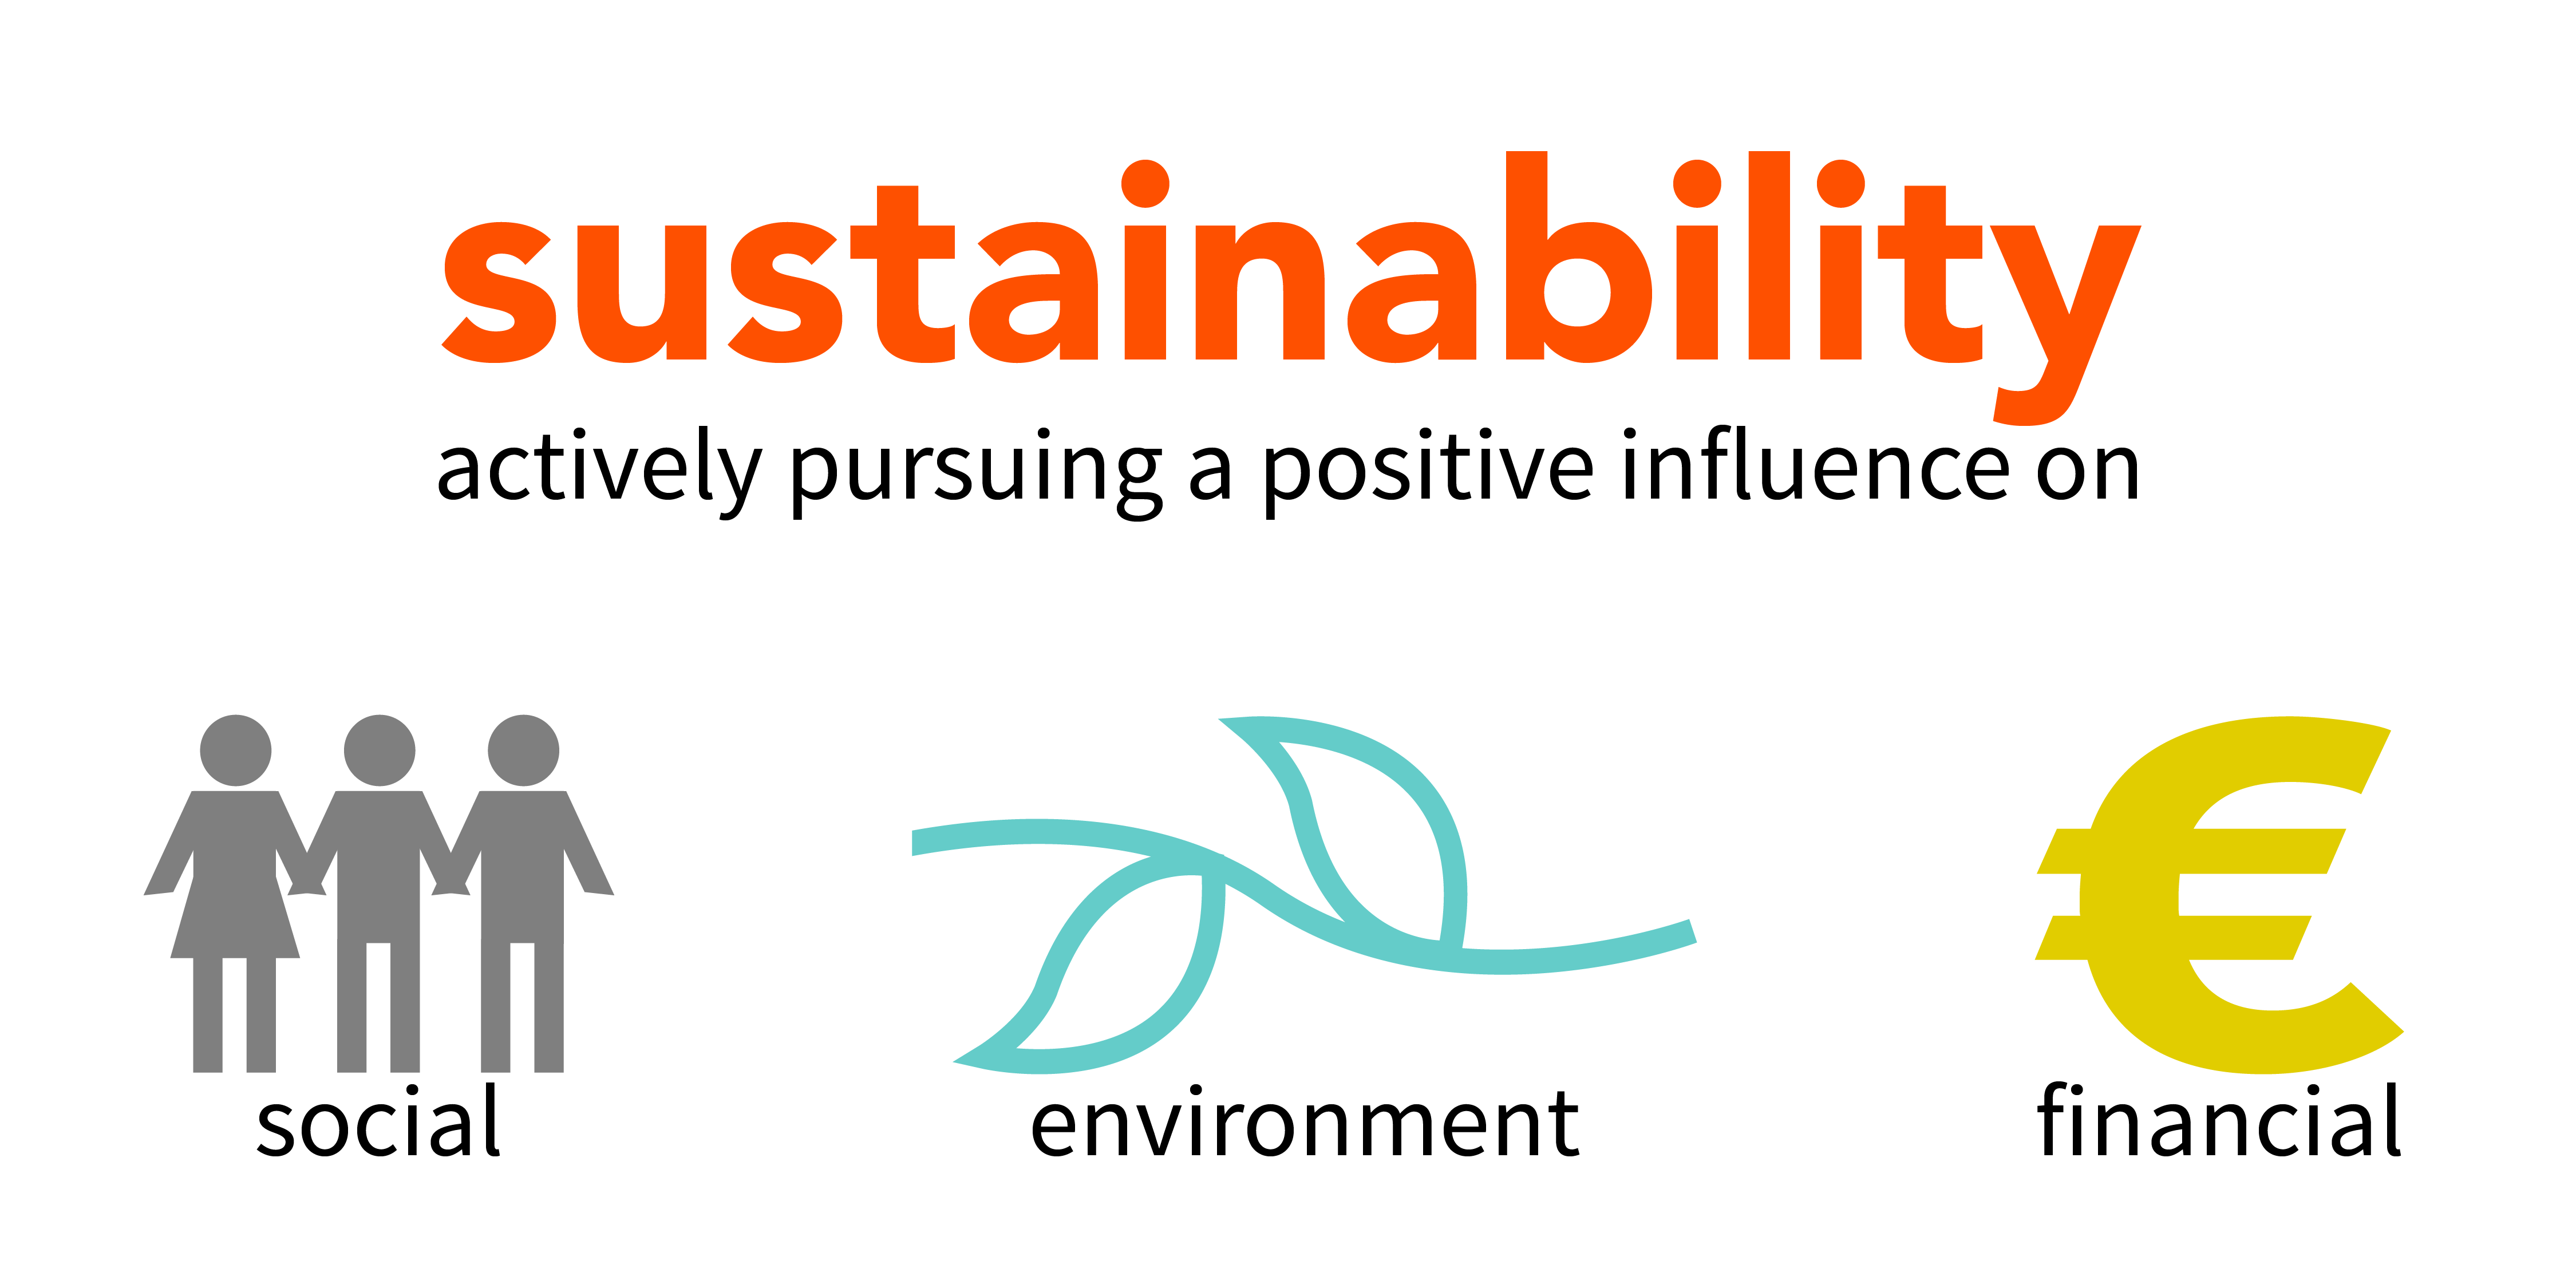 sustainability is actively pursuing a positive influence on social, environment and financial areas